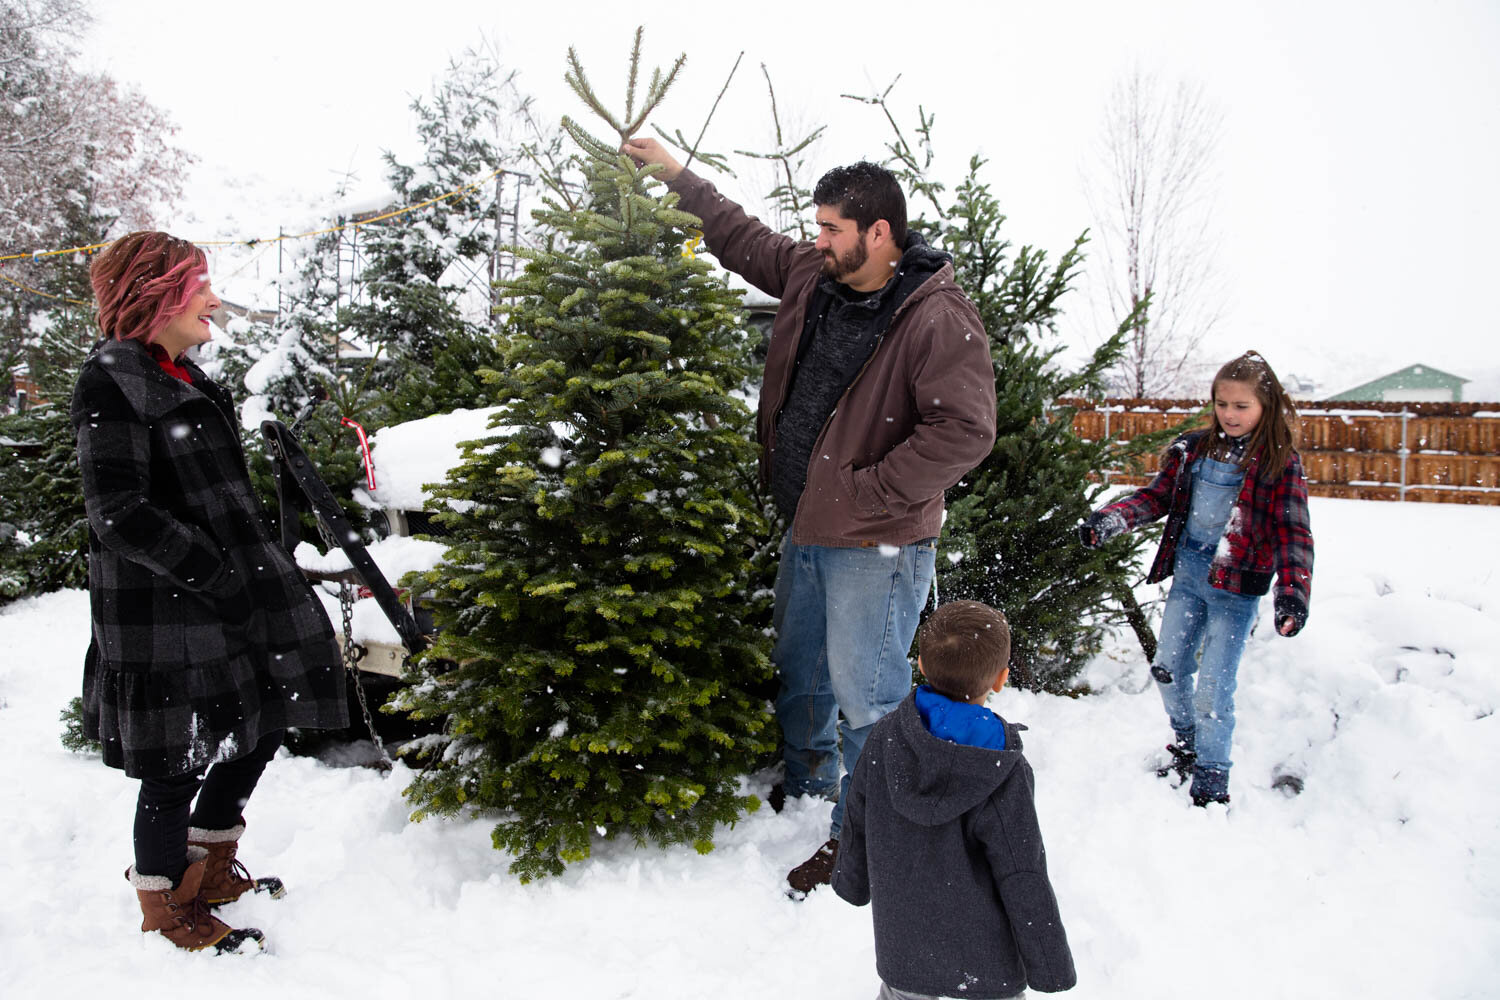 Family picking out their Christmas tree at a lot in Boise ID, seeing how tall it is compared to dad who is holding it up.